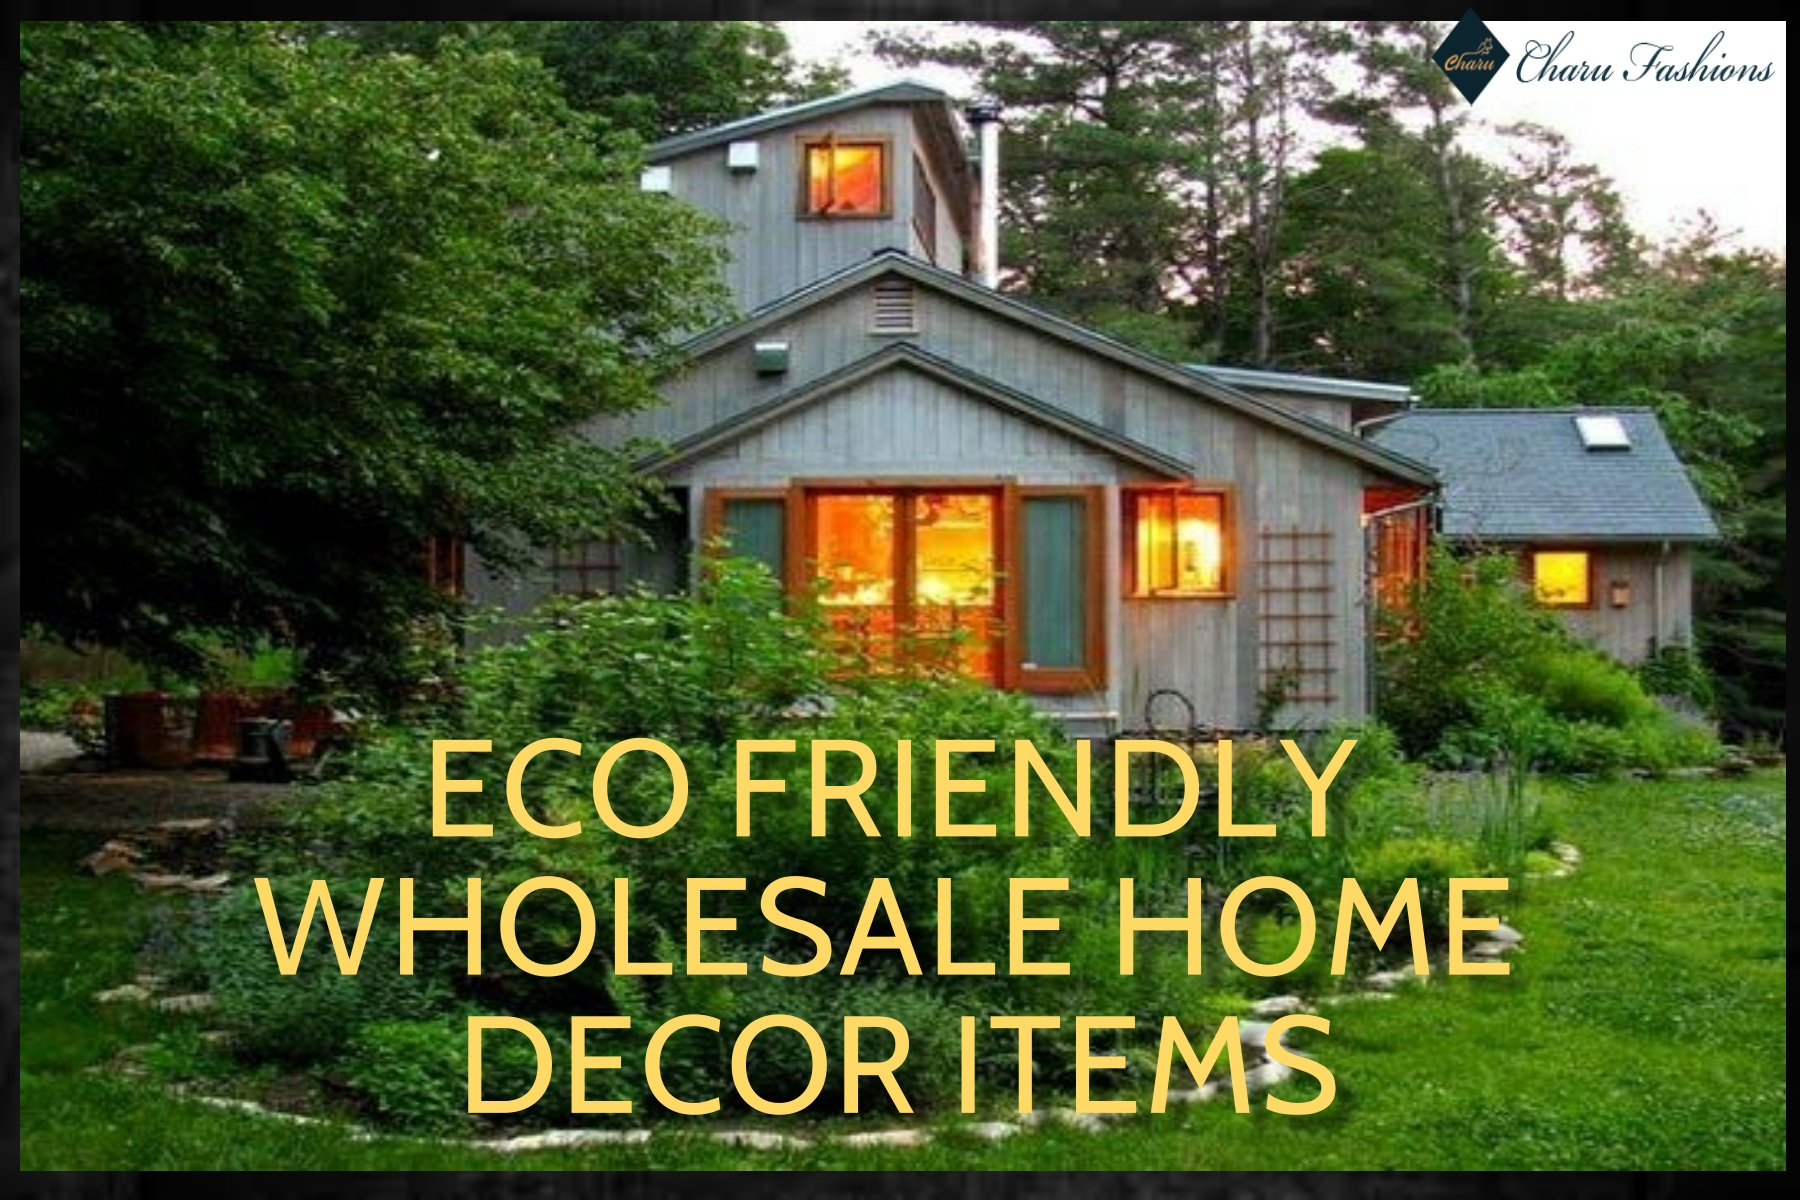 Best Eco Friendly Wholesale Home Decor Ideas Charu Fashions This Month